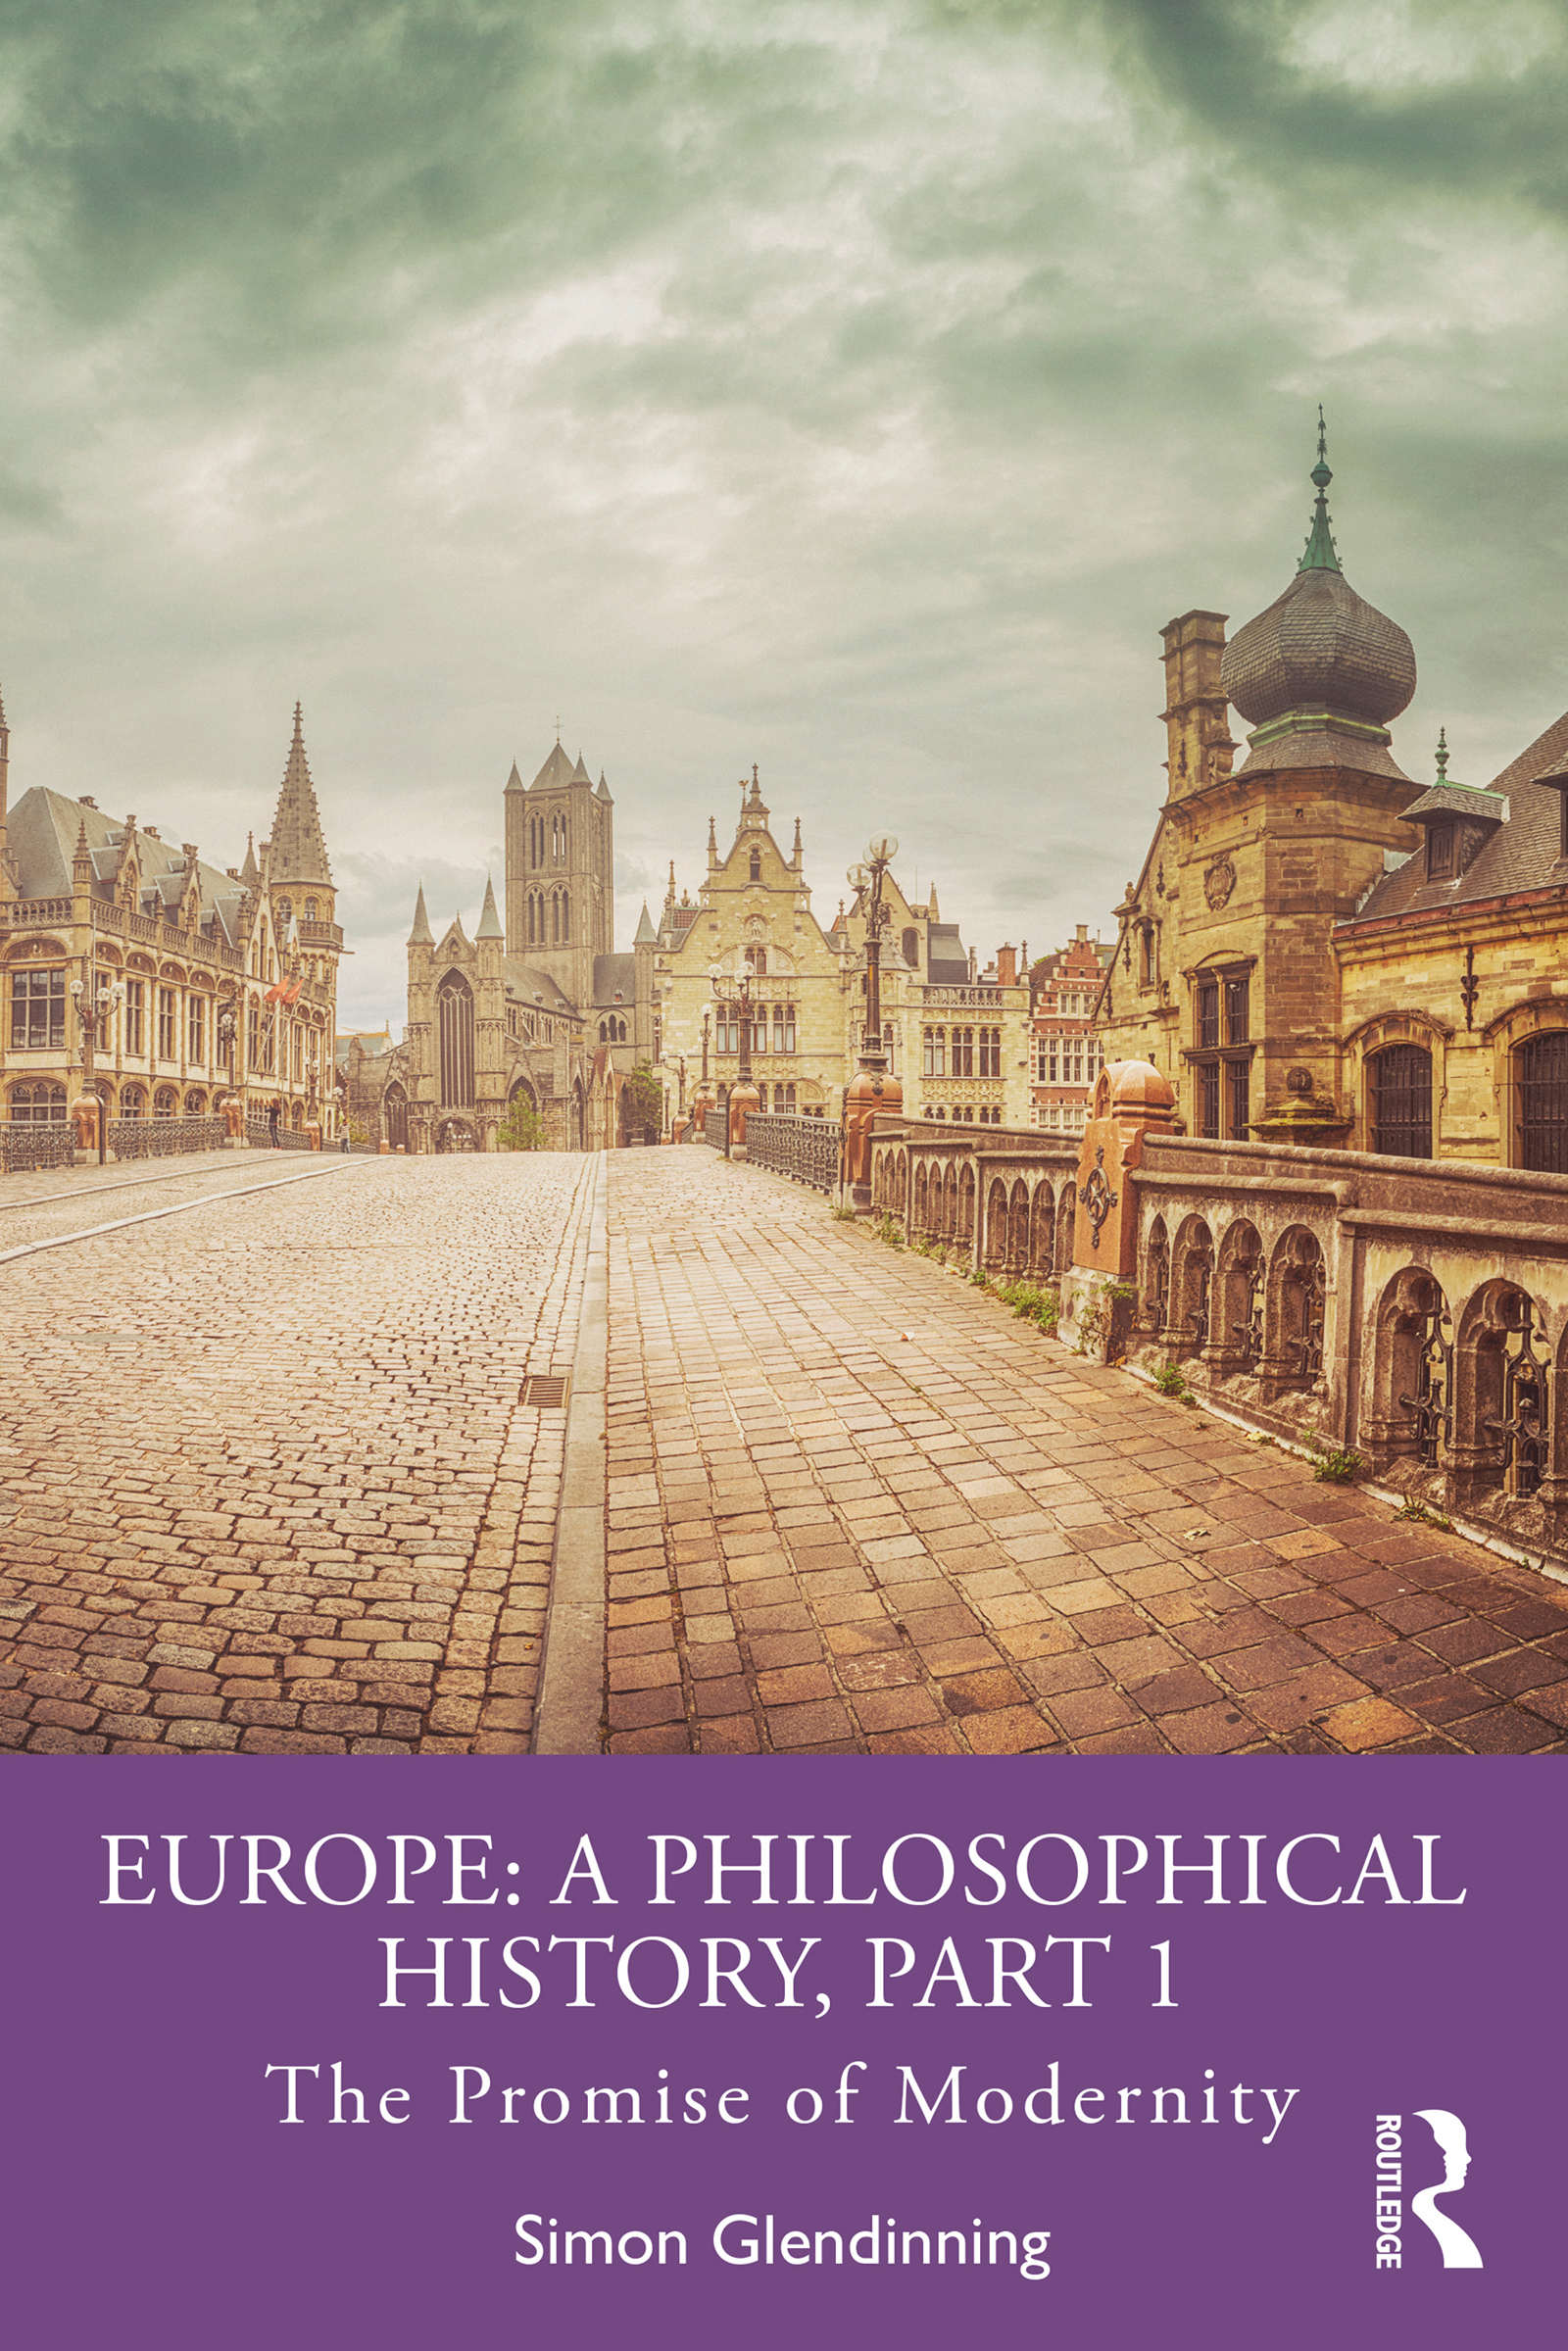 Europe: A Philosophical History, Part 1